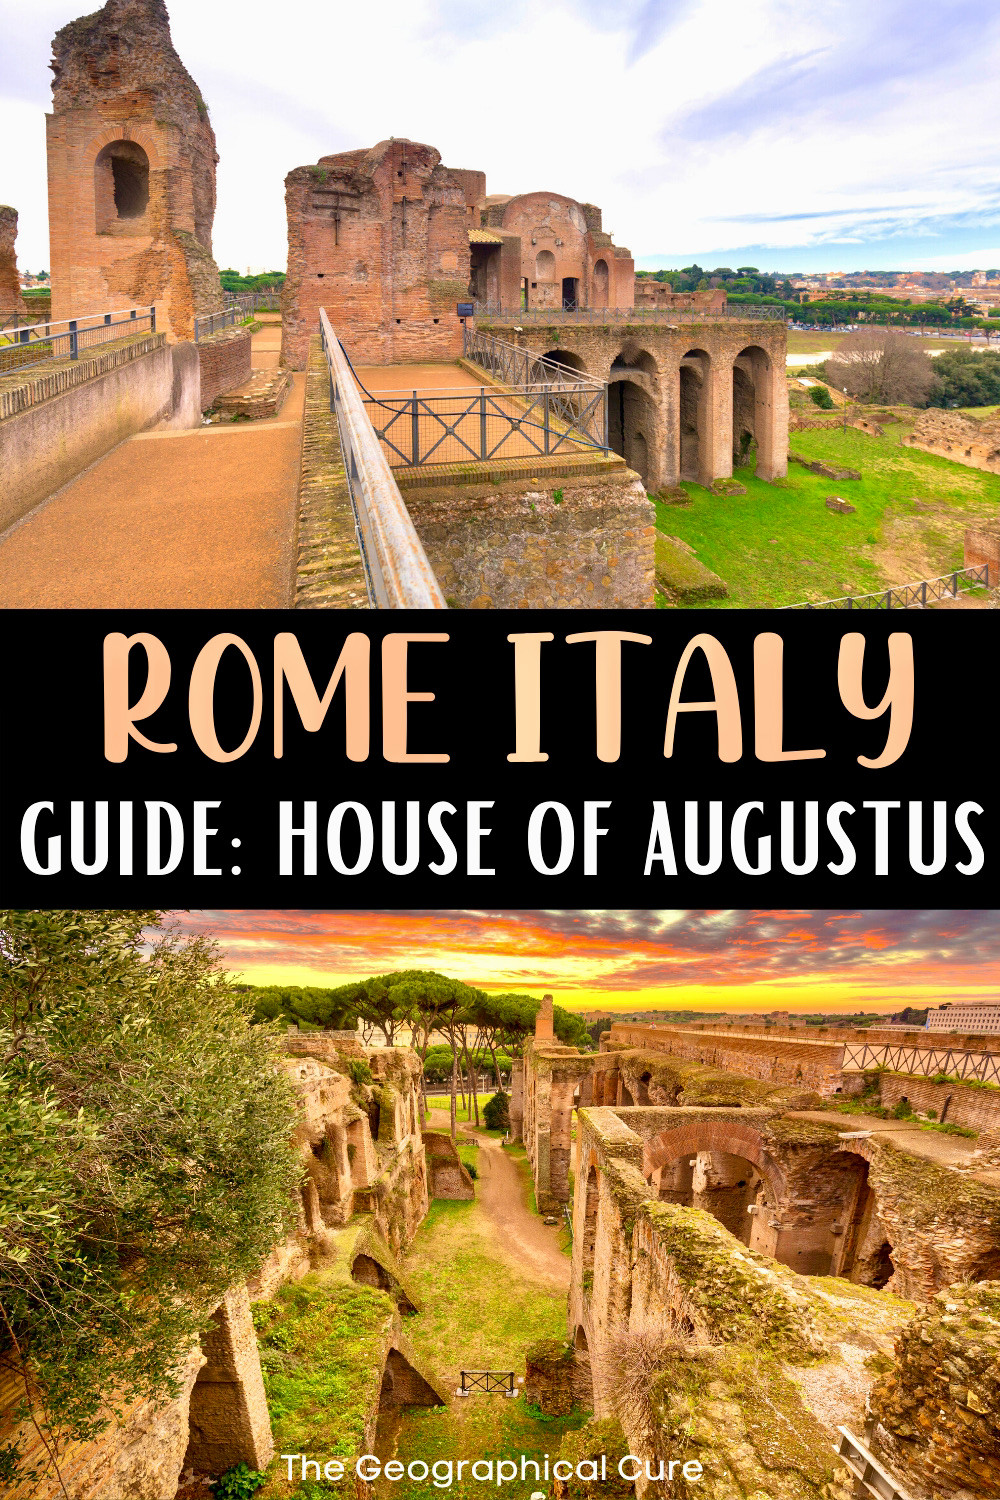 guide to the House of Augustus, a must see ancient Roman ruin in Rome Italy